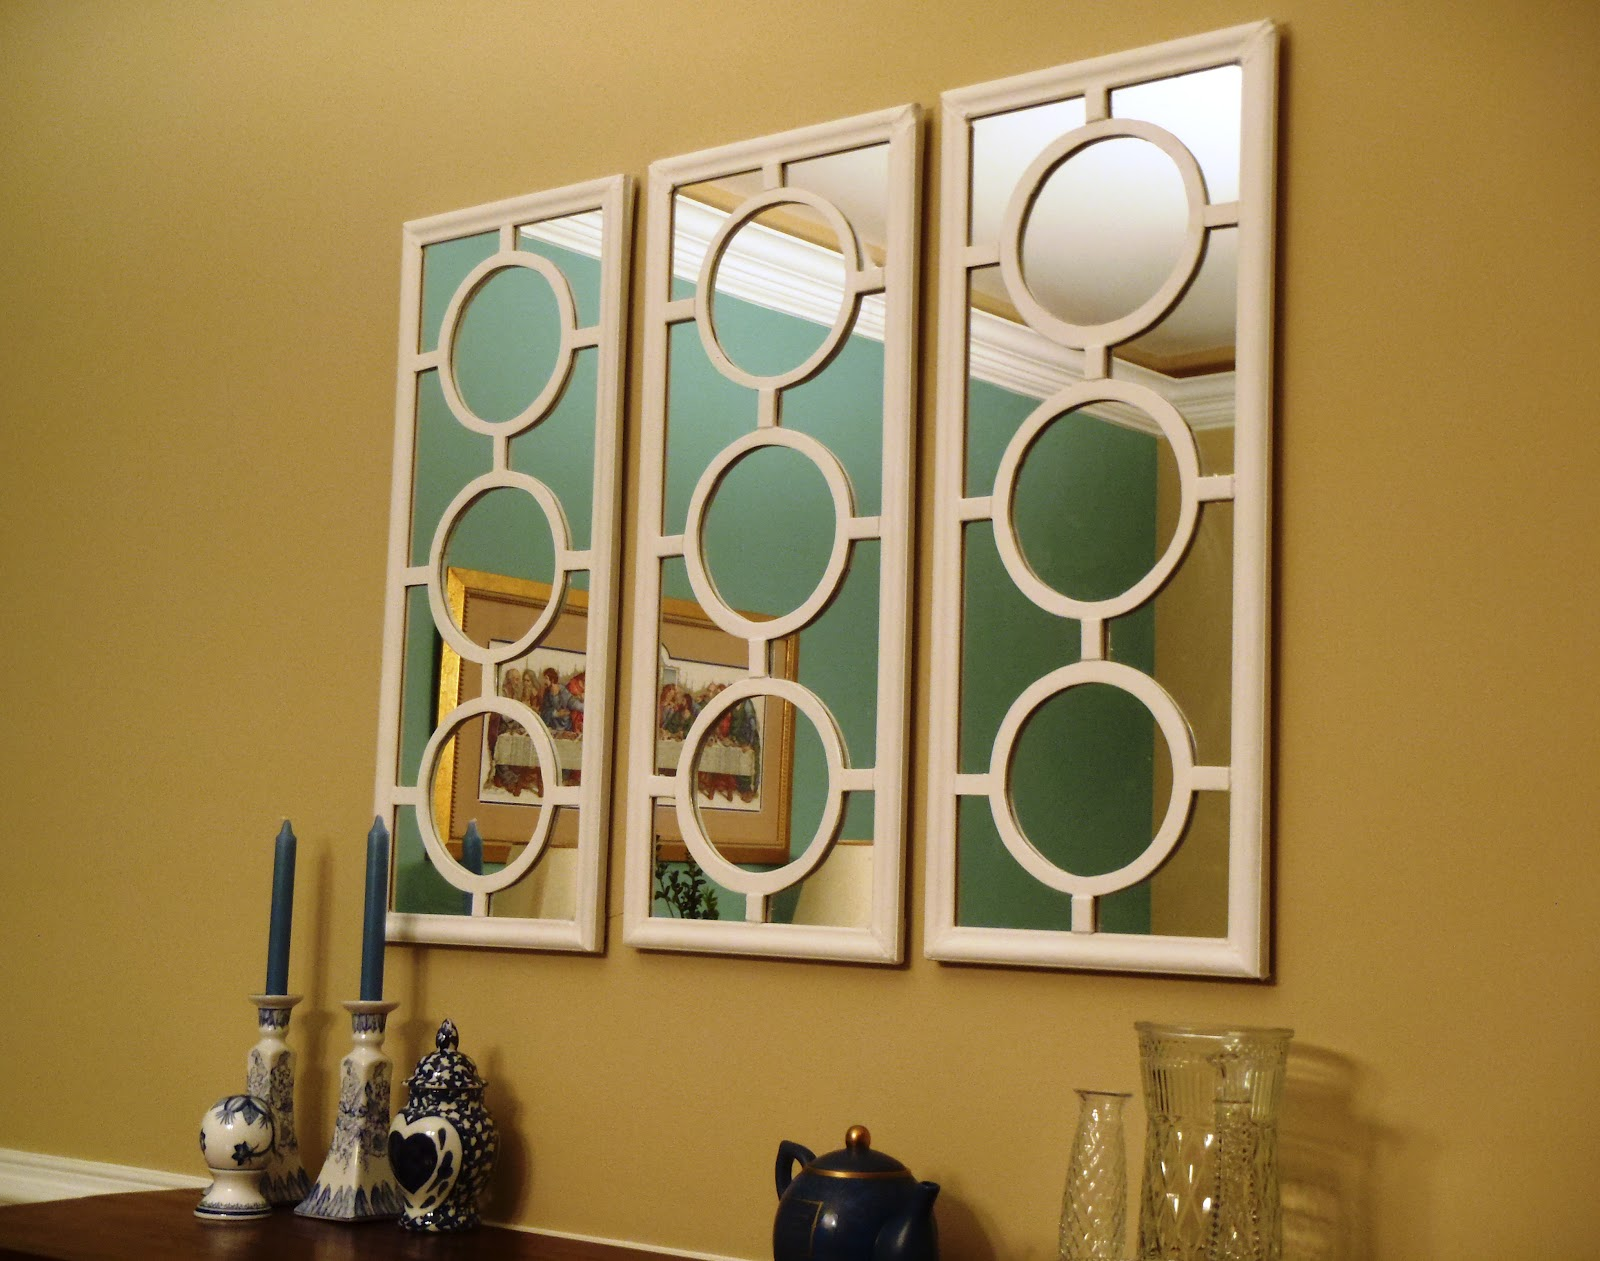 Lazy liz on less dining wall mirror decor for Dining room mirrors